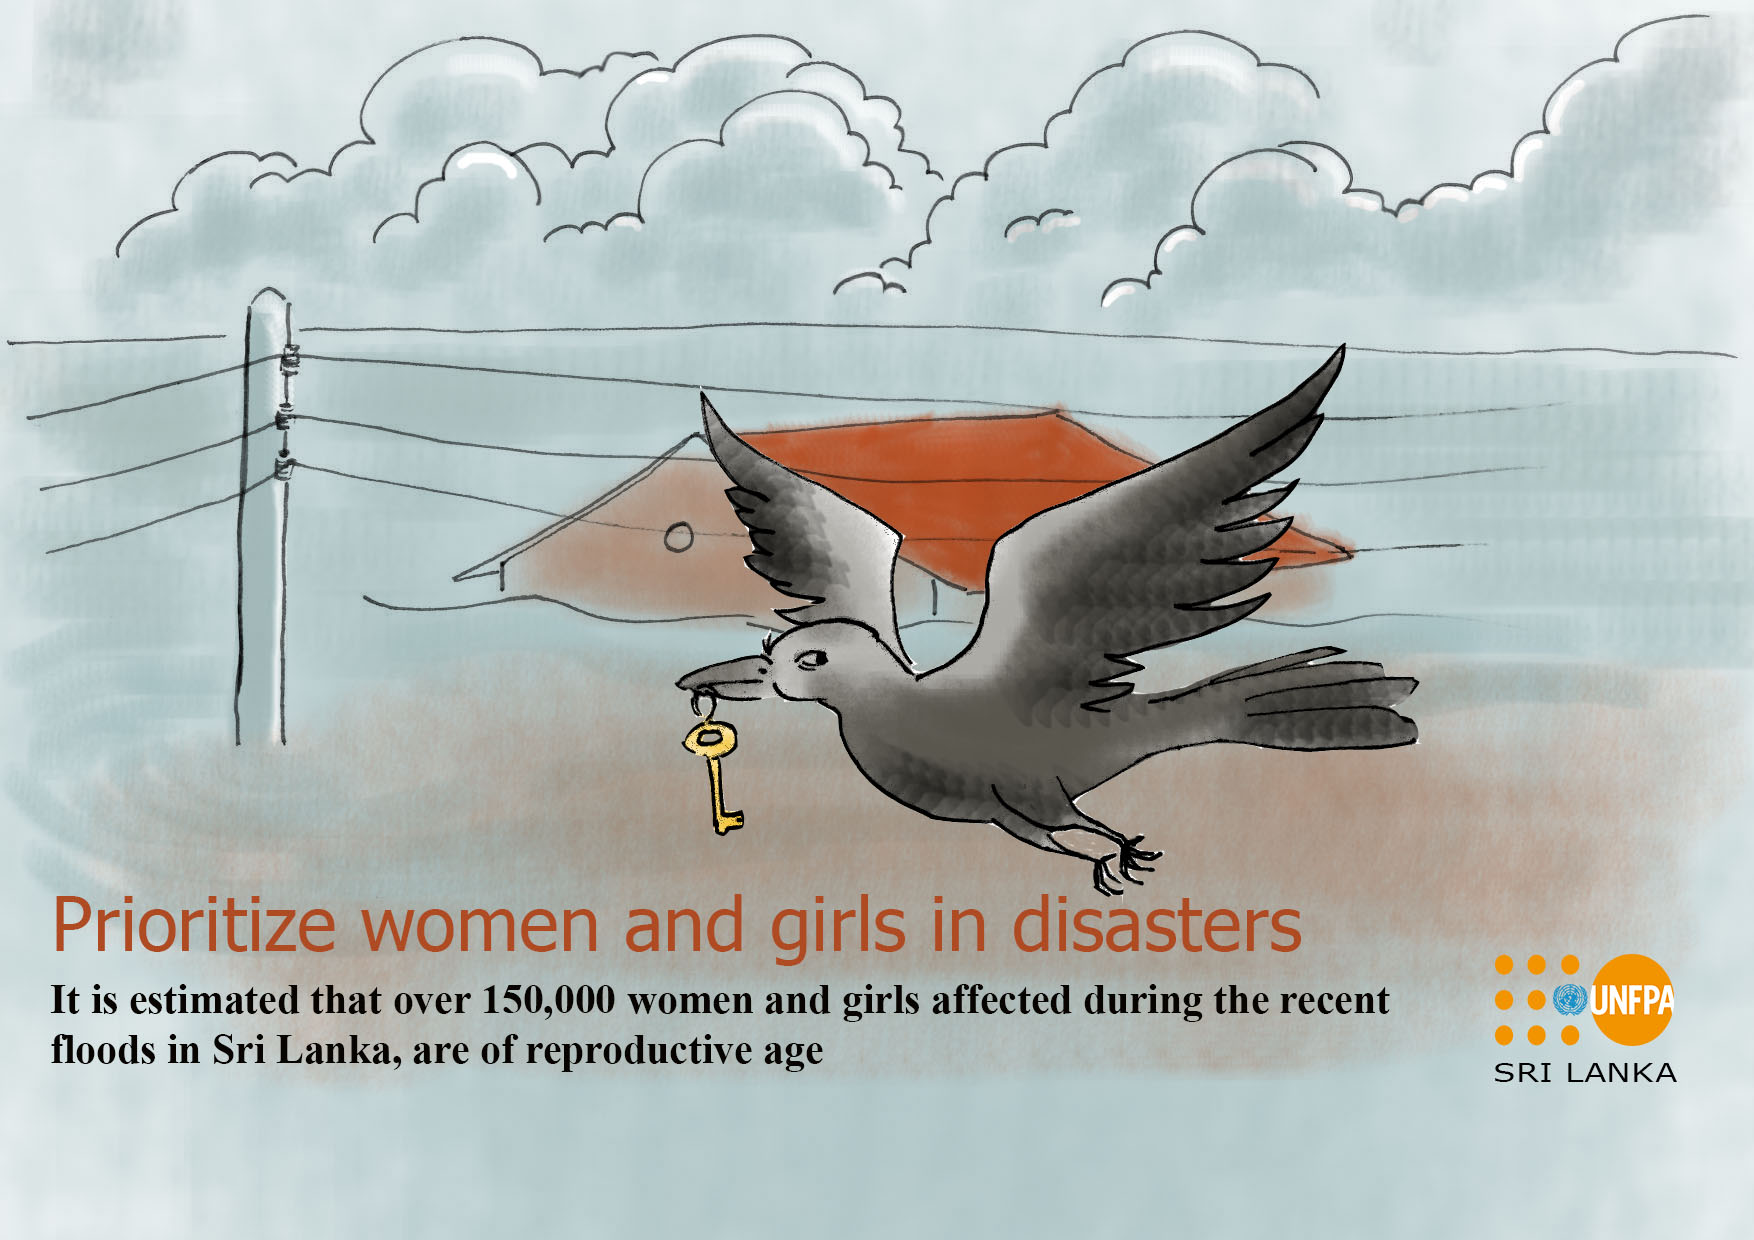 Prioritize girls during disasters